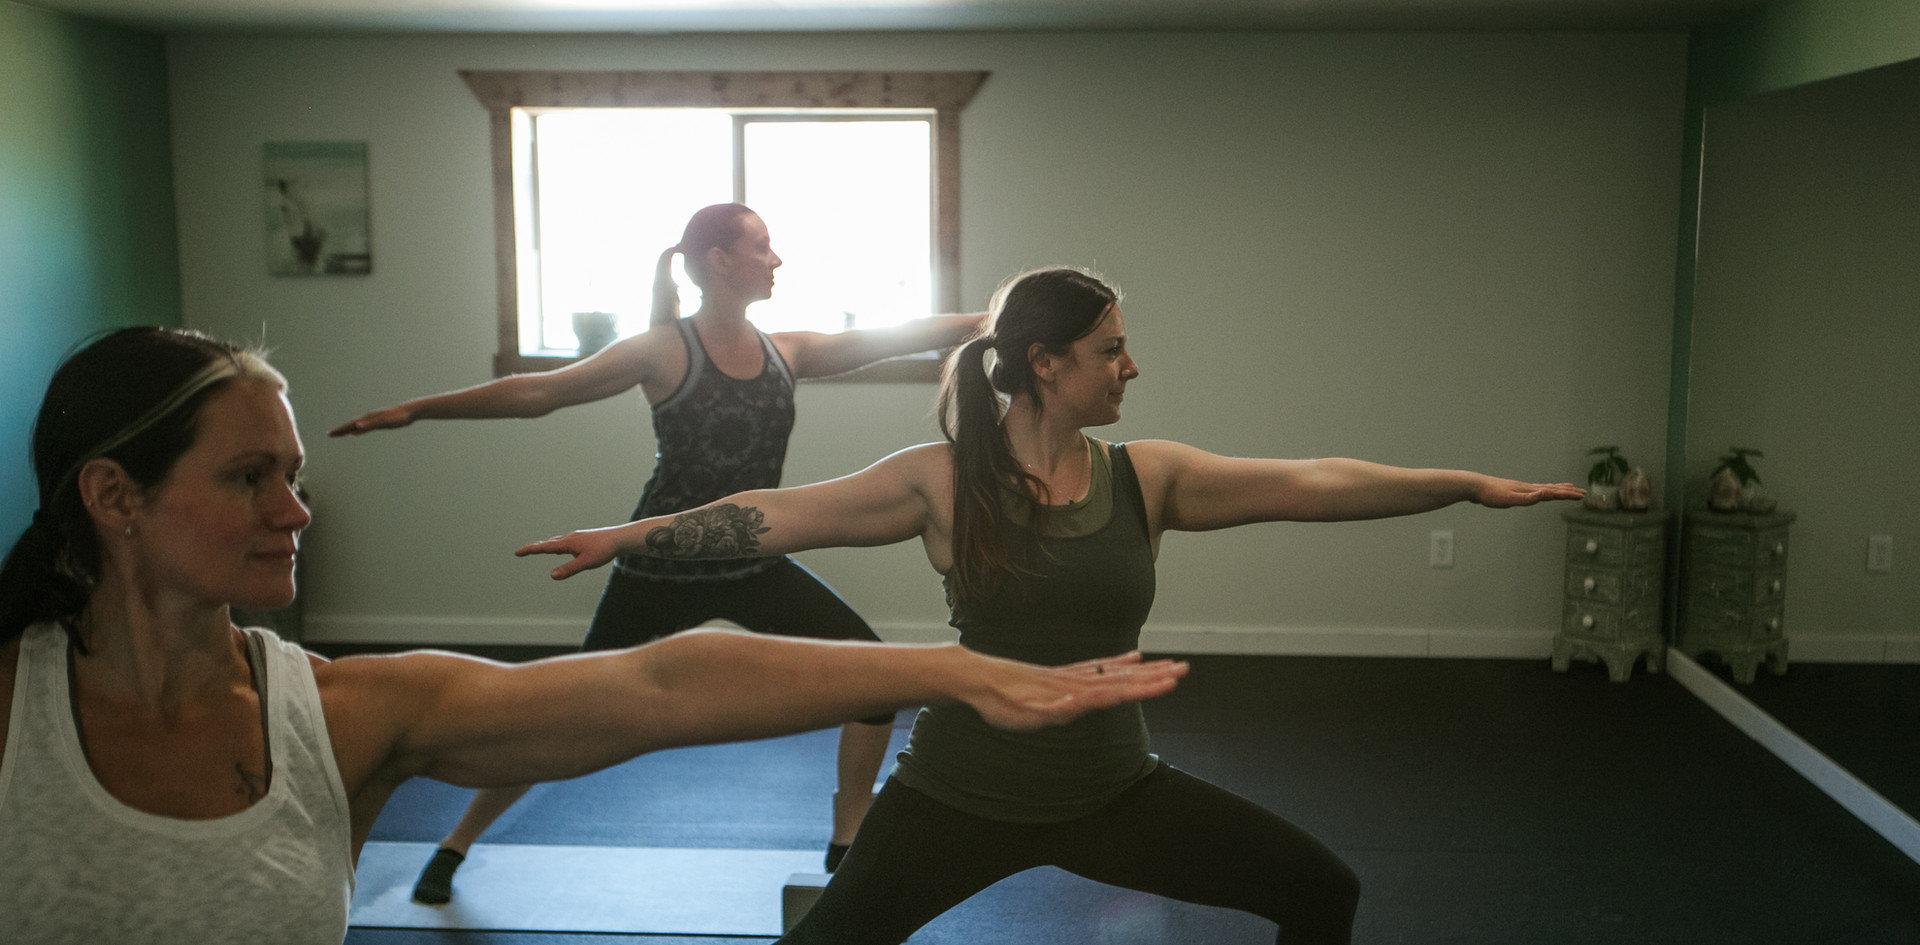 Rooted Yoga. Move better. Feel Better.